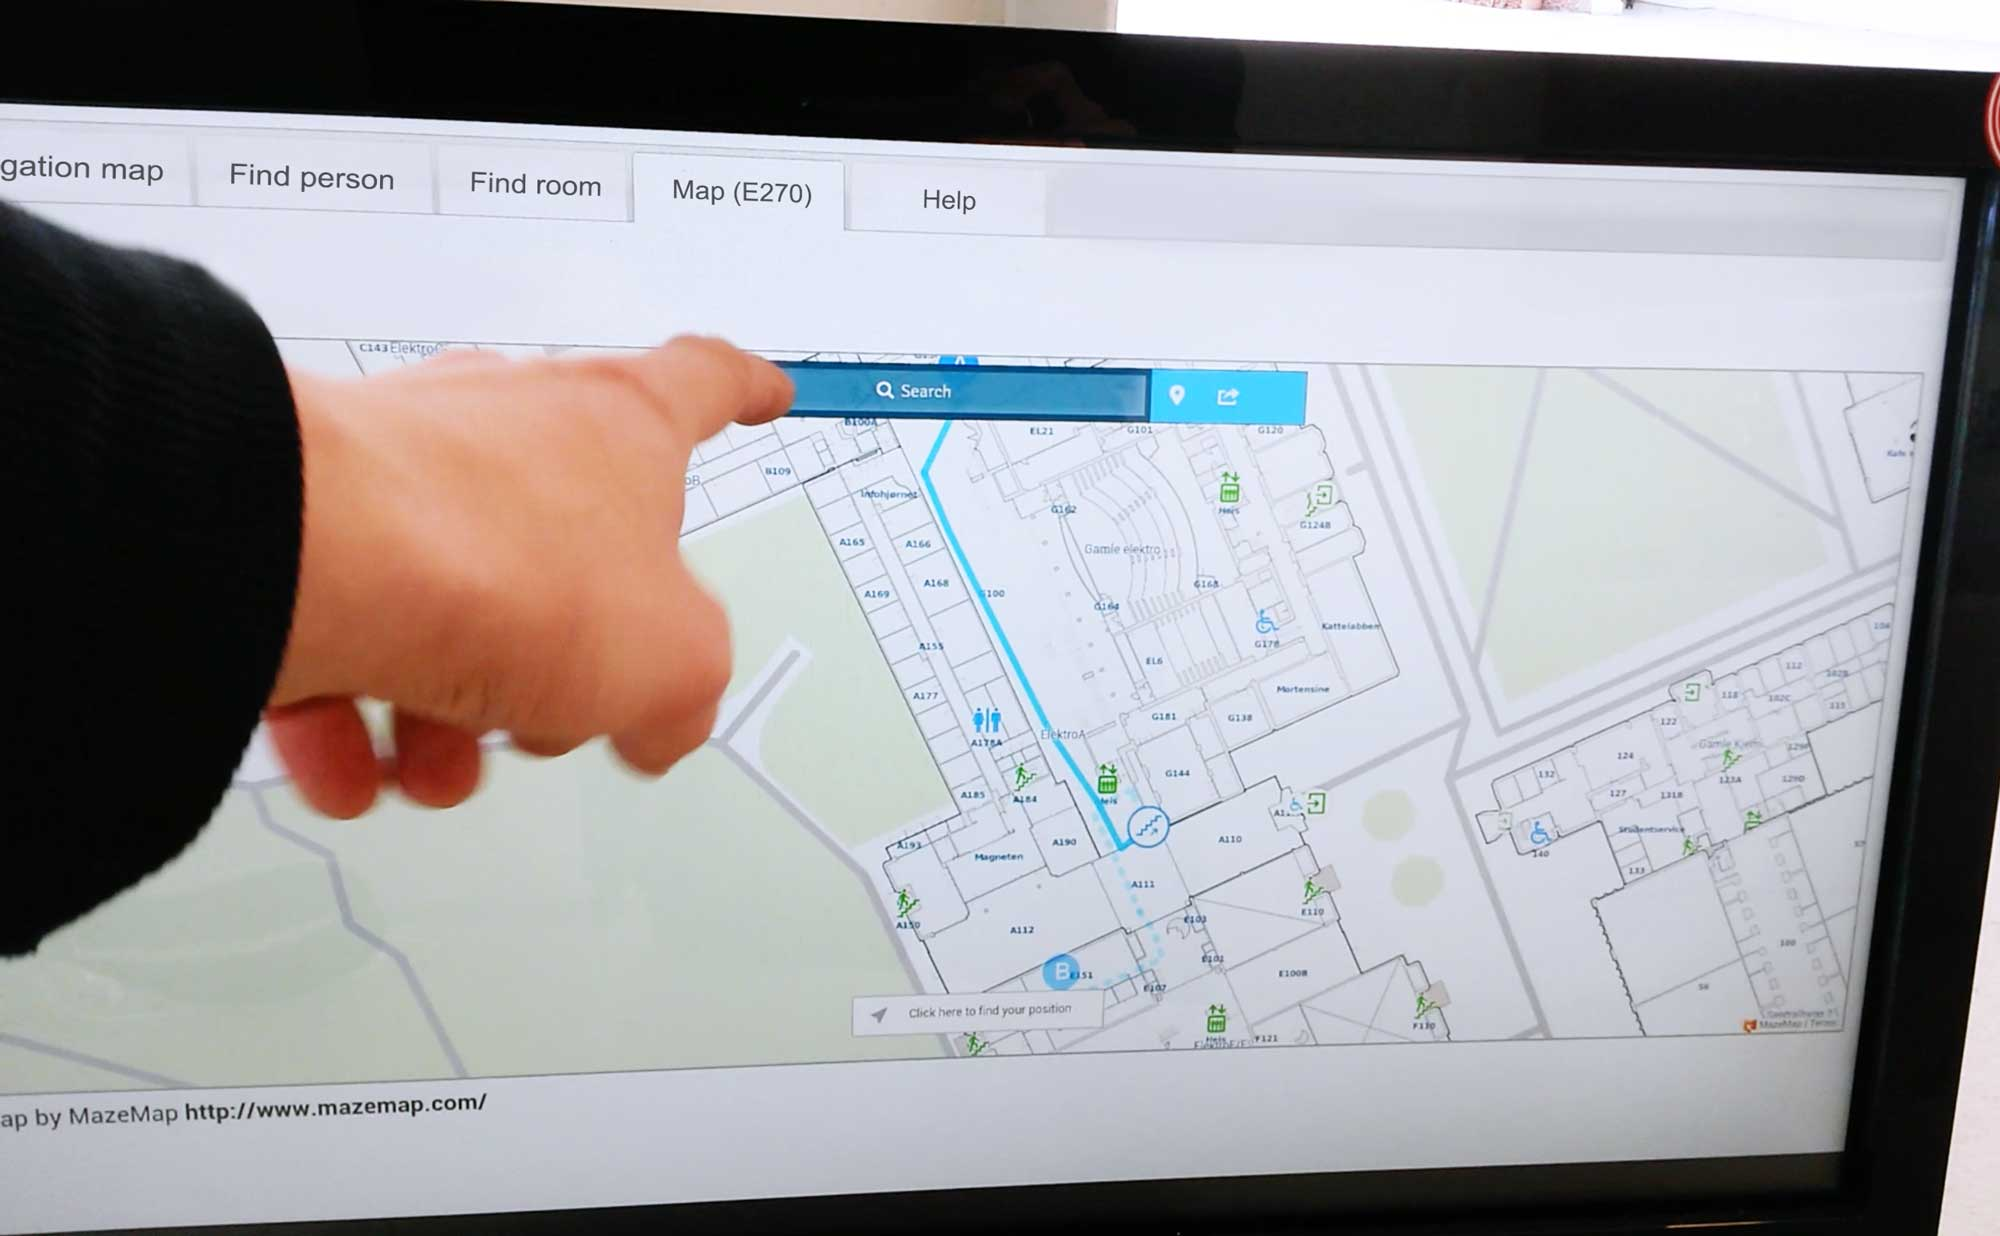 Hand touching a large info screen with MazeMap on it